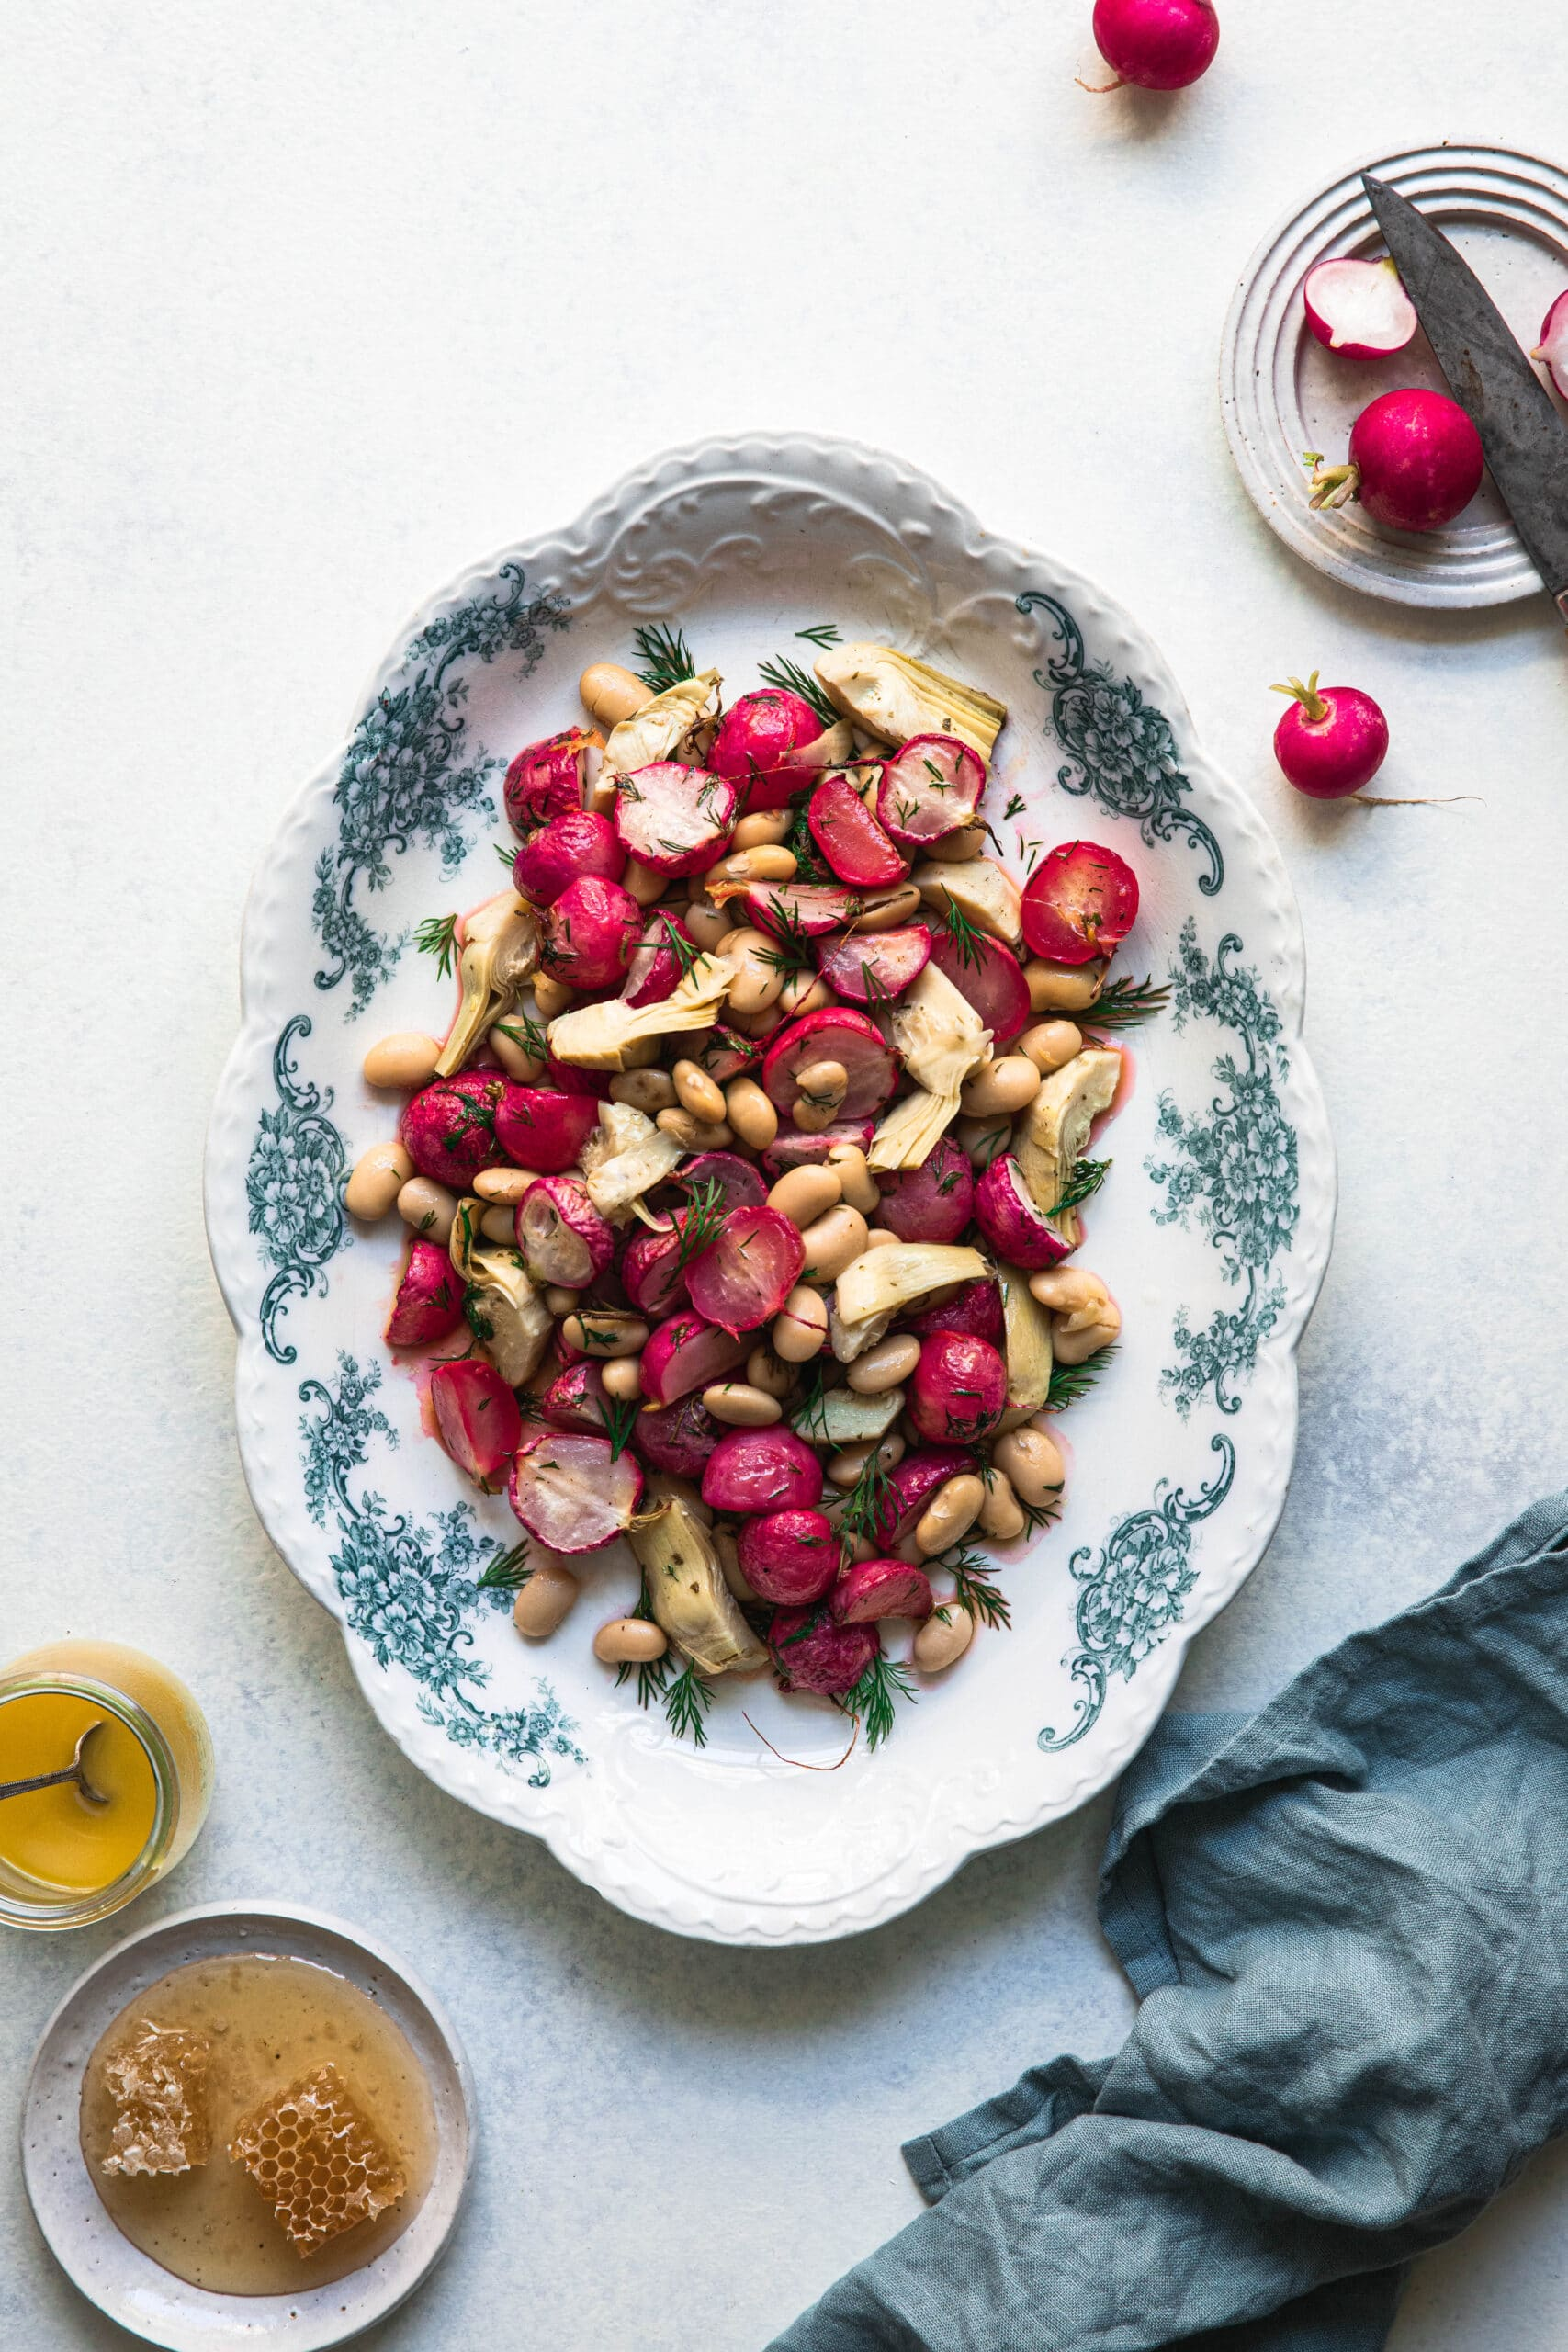 roasted radishes with broad beans and artichoke hearts with lemon vinaigrette